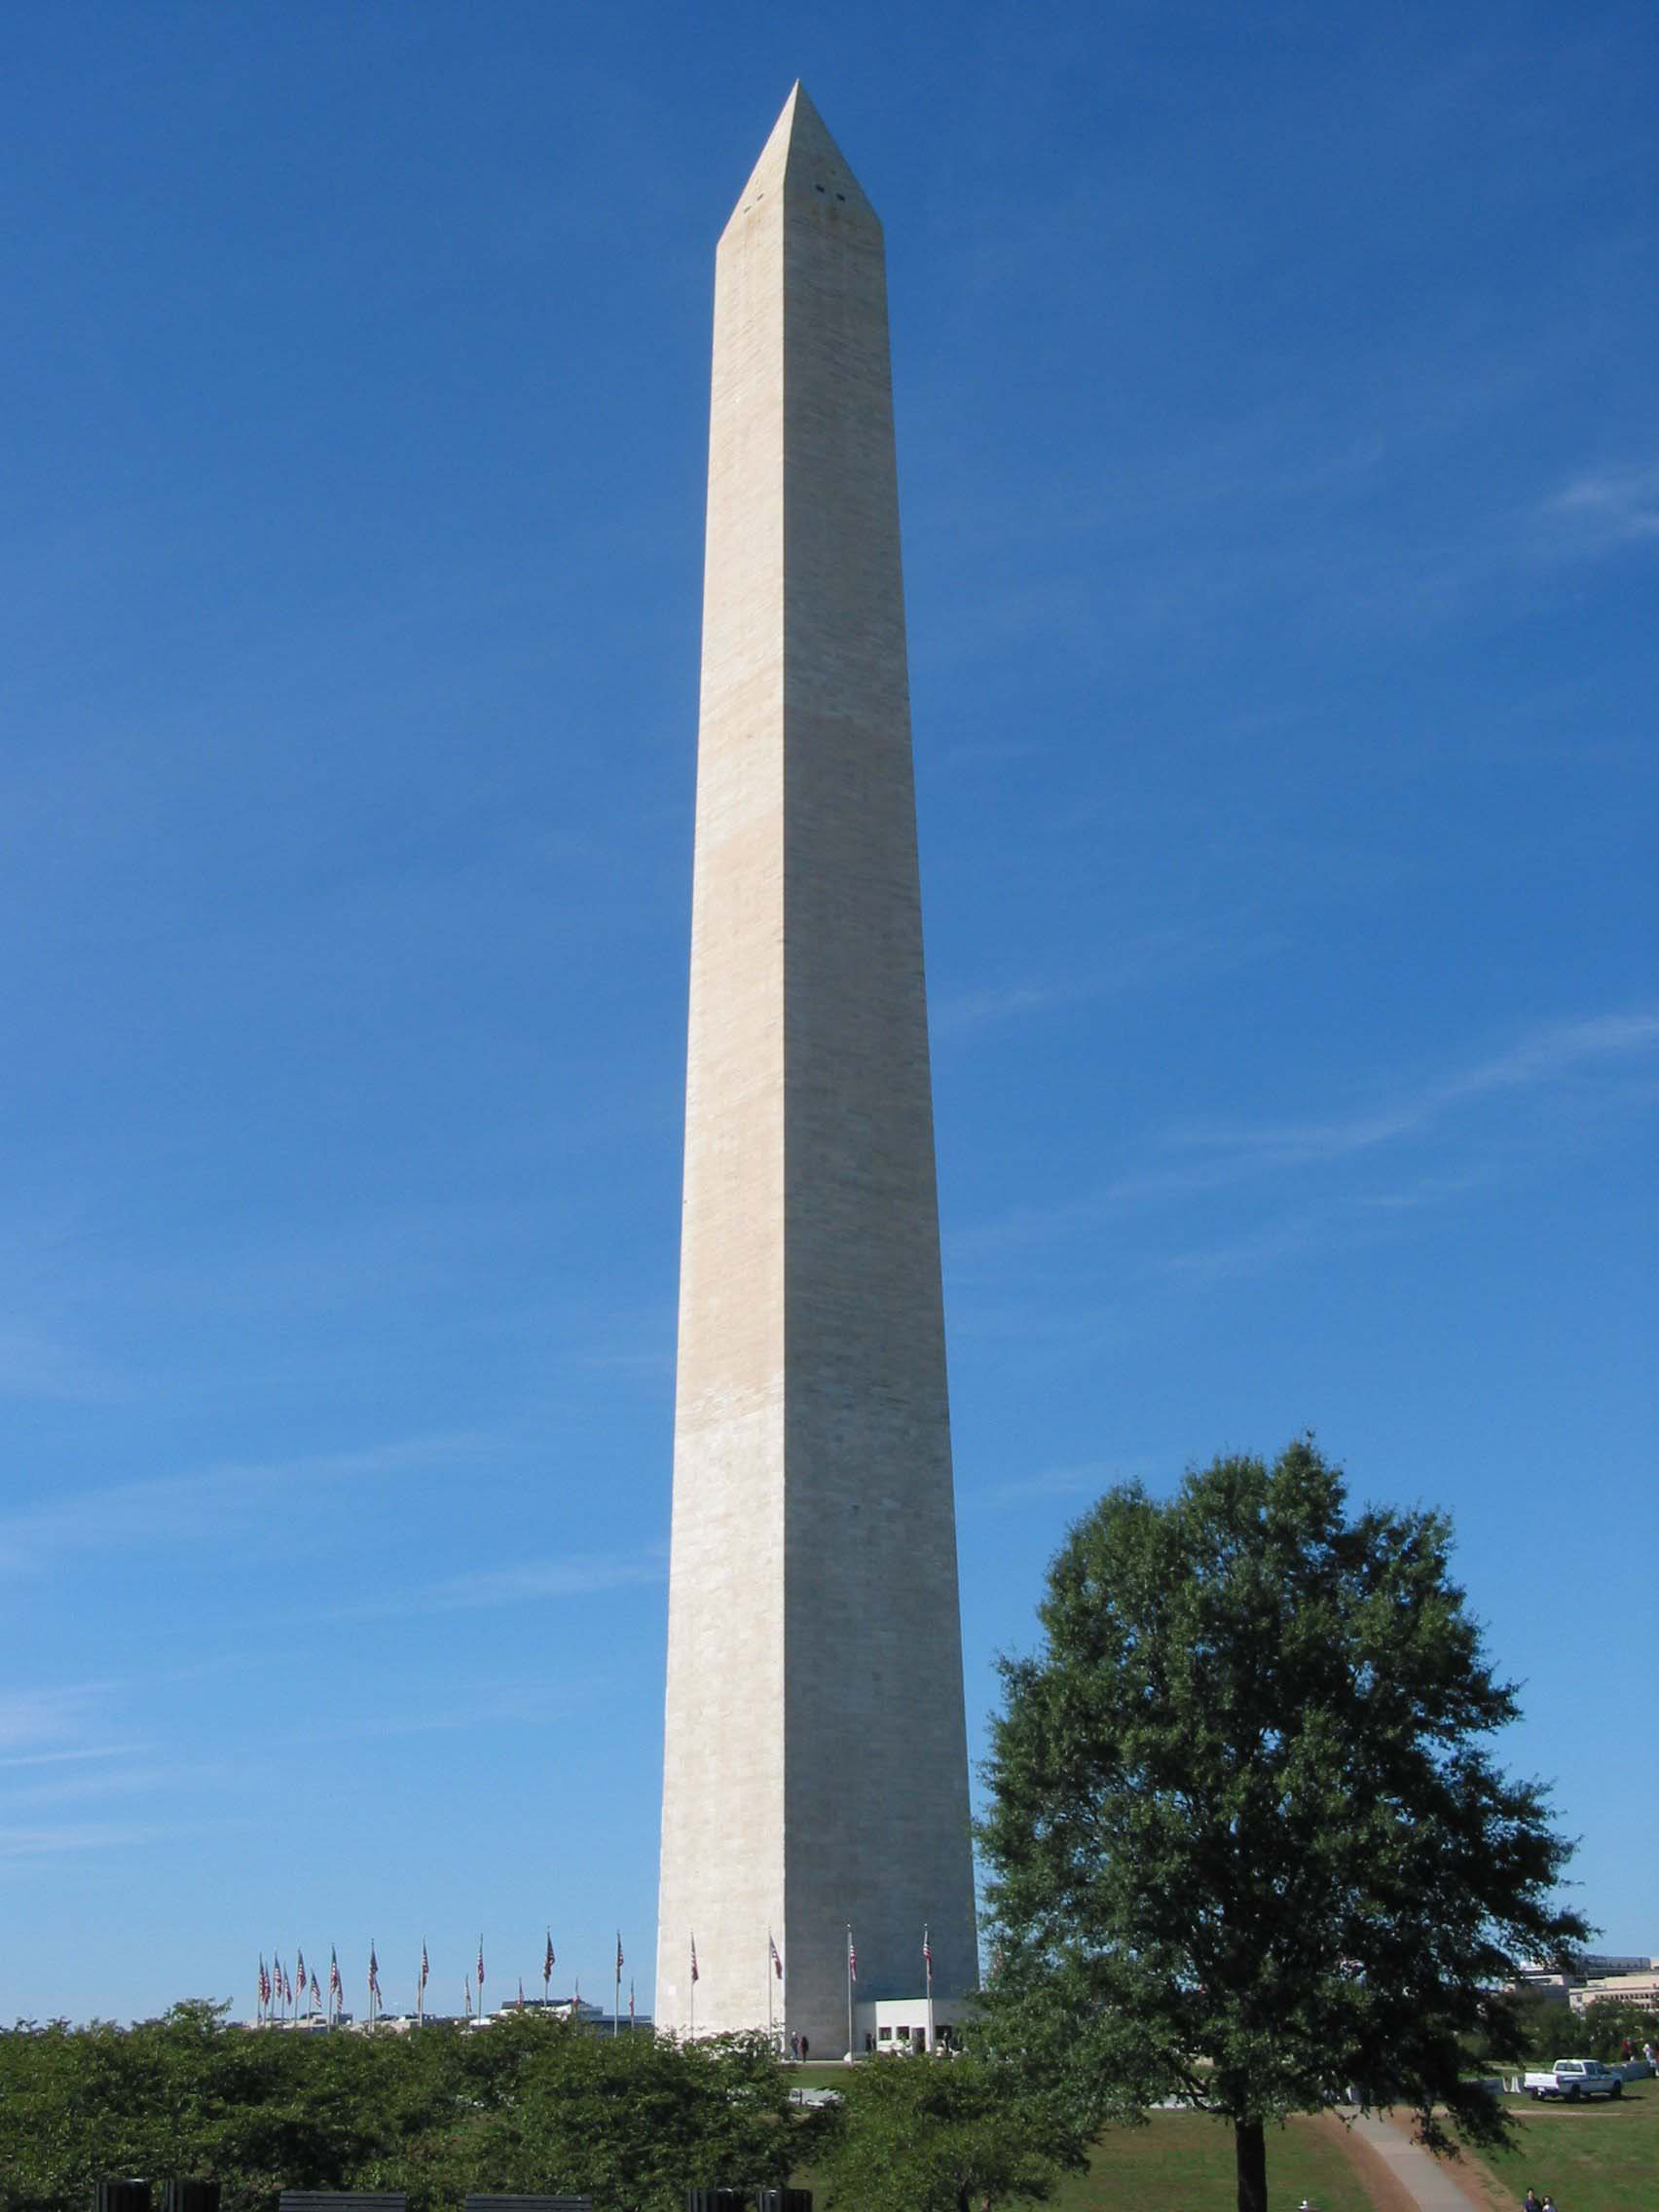 Washington monuments clipart clip freeuse download Washington Monument | Clipart Panda - Free Clipart Images clip freeuse download